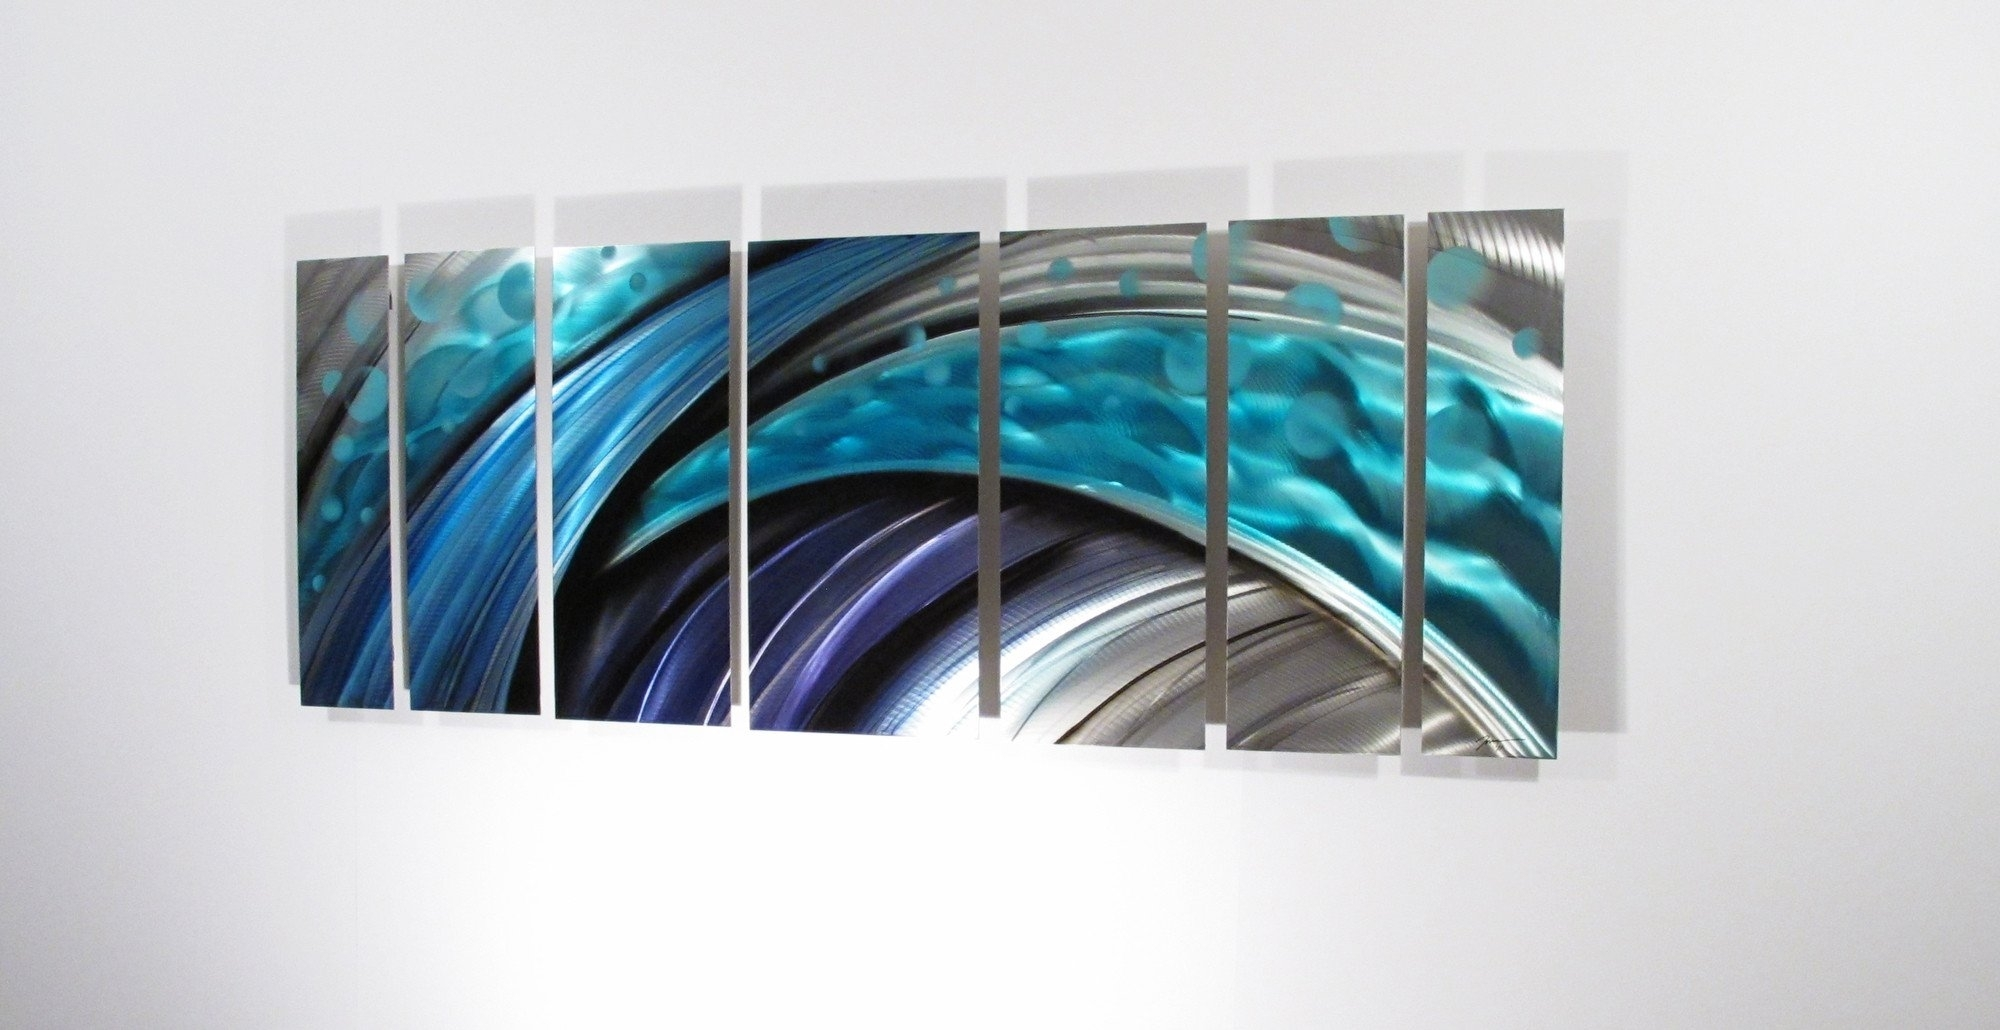 48 Metal Wall Art Panels, Wall Art Lovely Wall Art Adelaide Full Hd intended for Metal Wall Art Panels (Image 1 of 20)